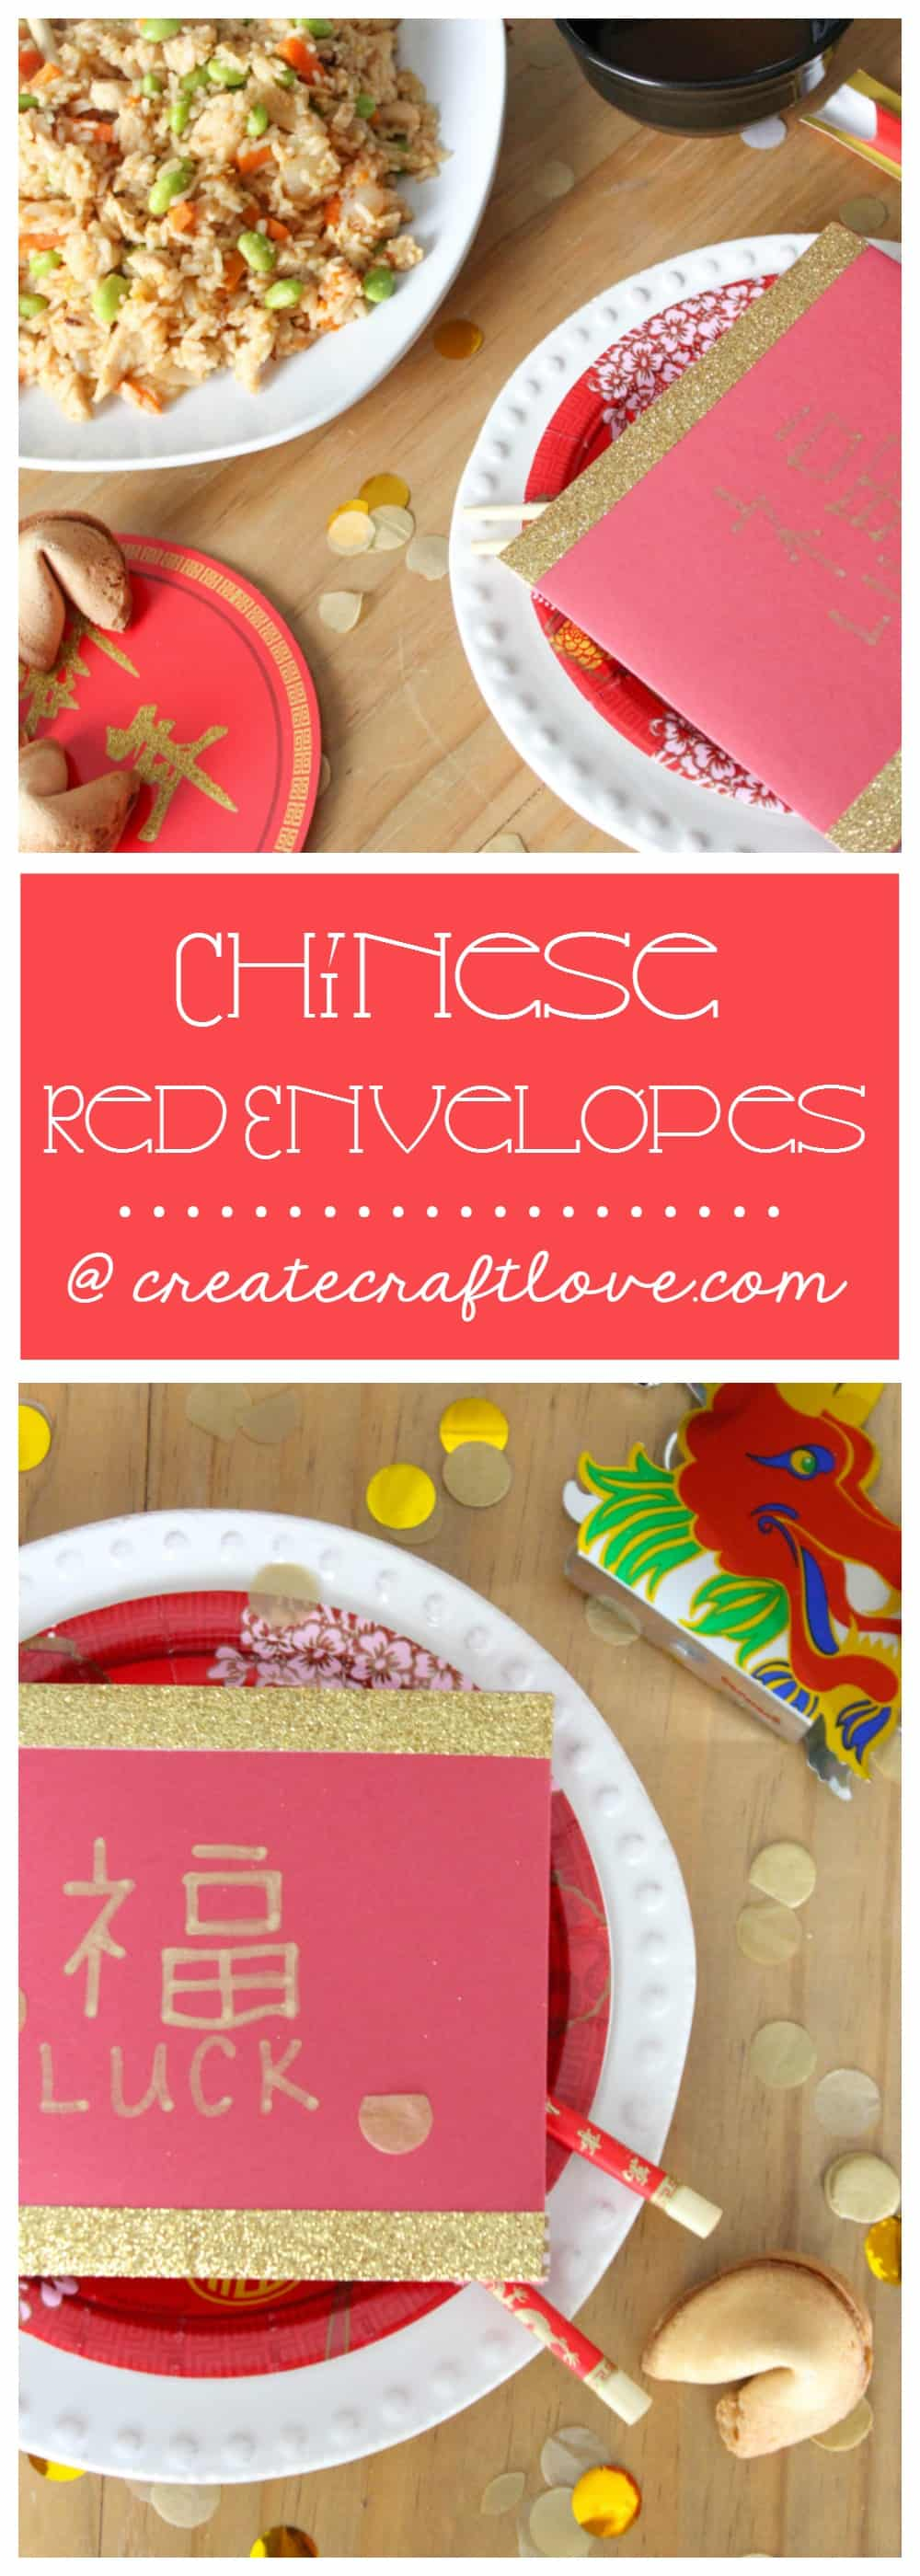 Celebrate the Chinese New Year with these DIY Red Envelopes, family, food, and fun! #spon #wokwednesday